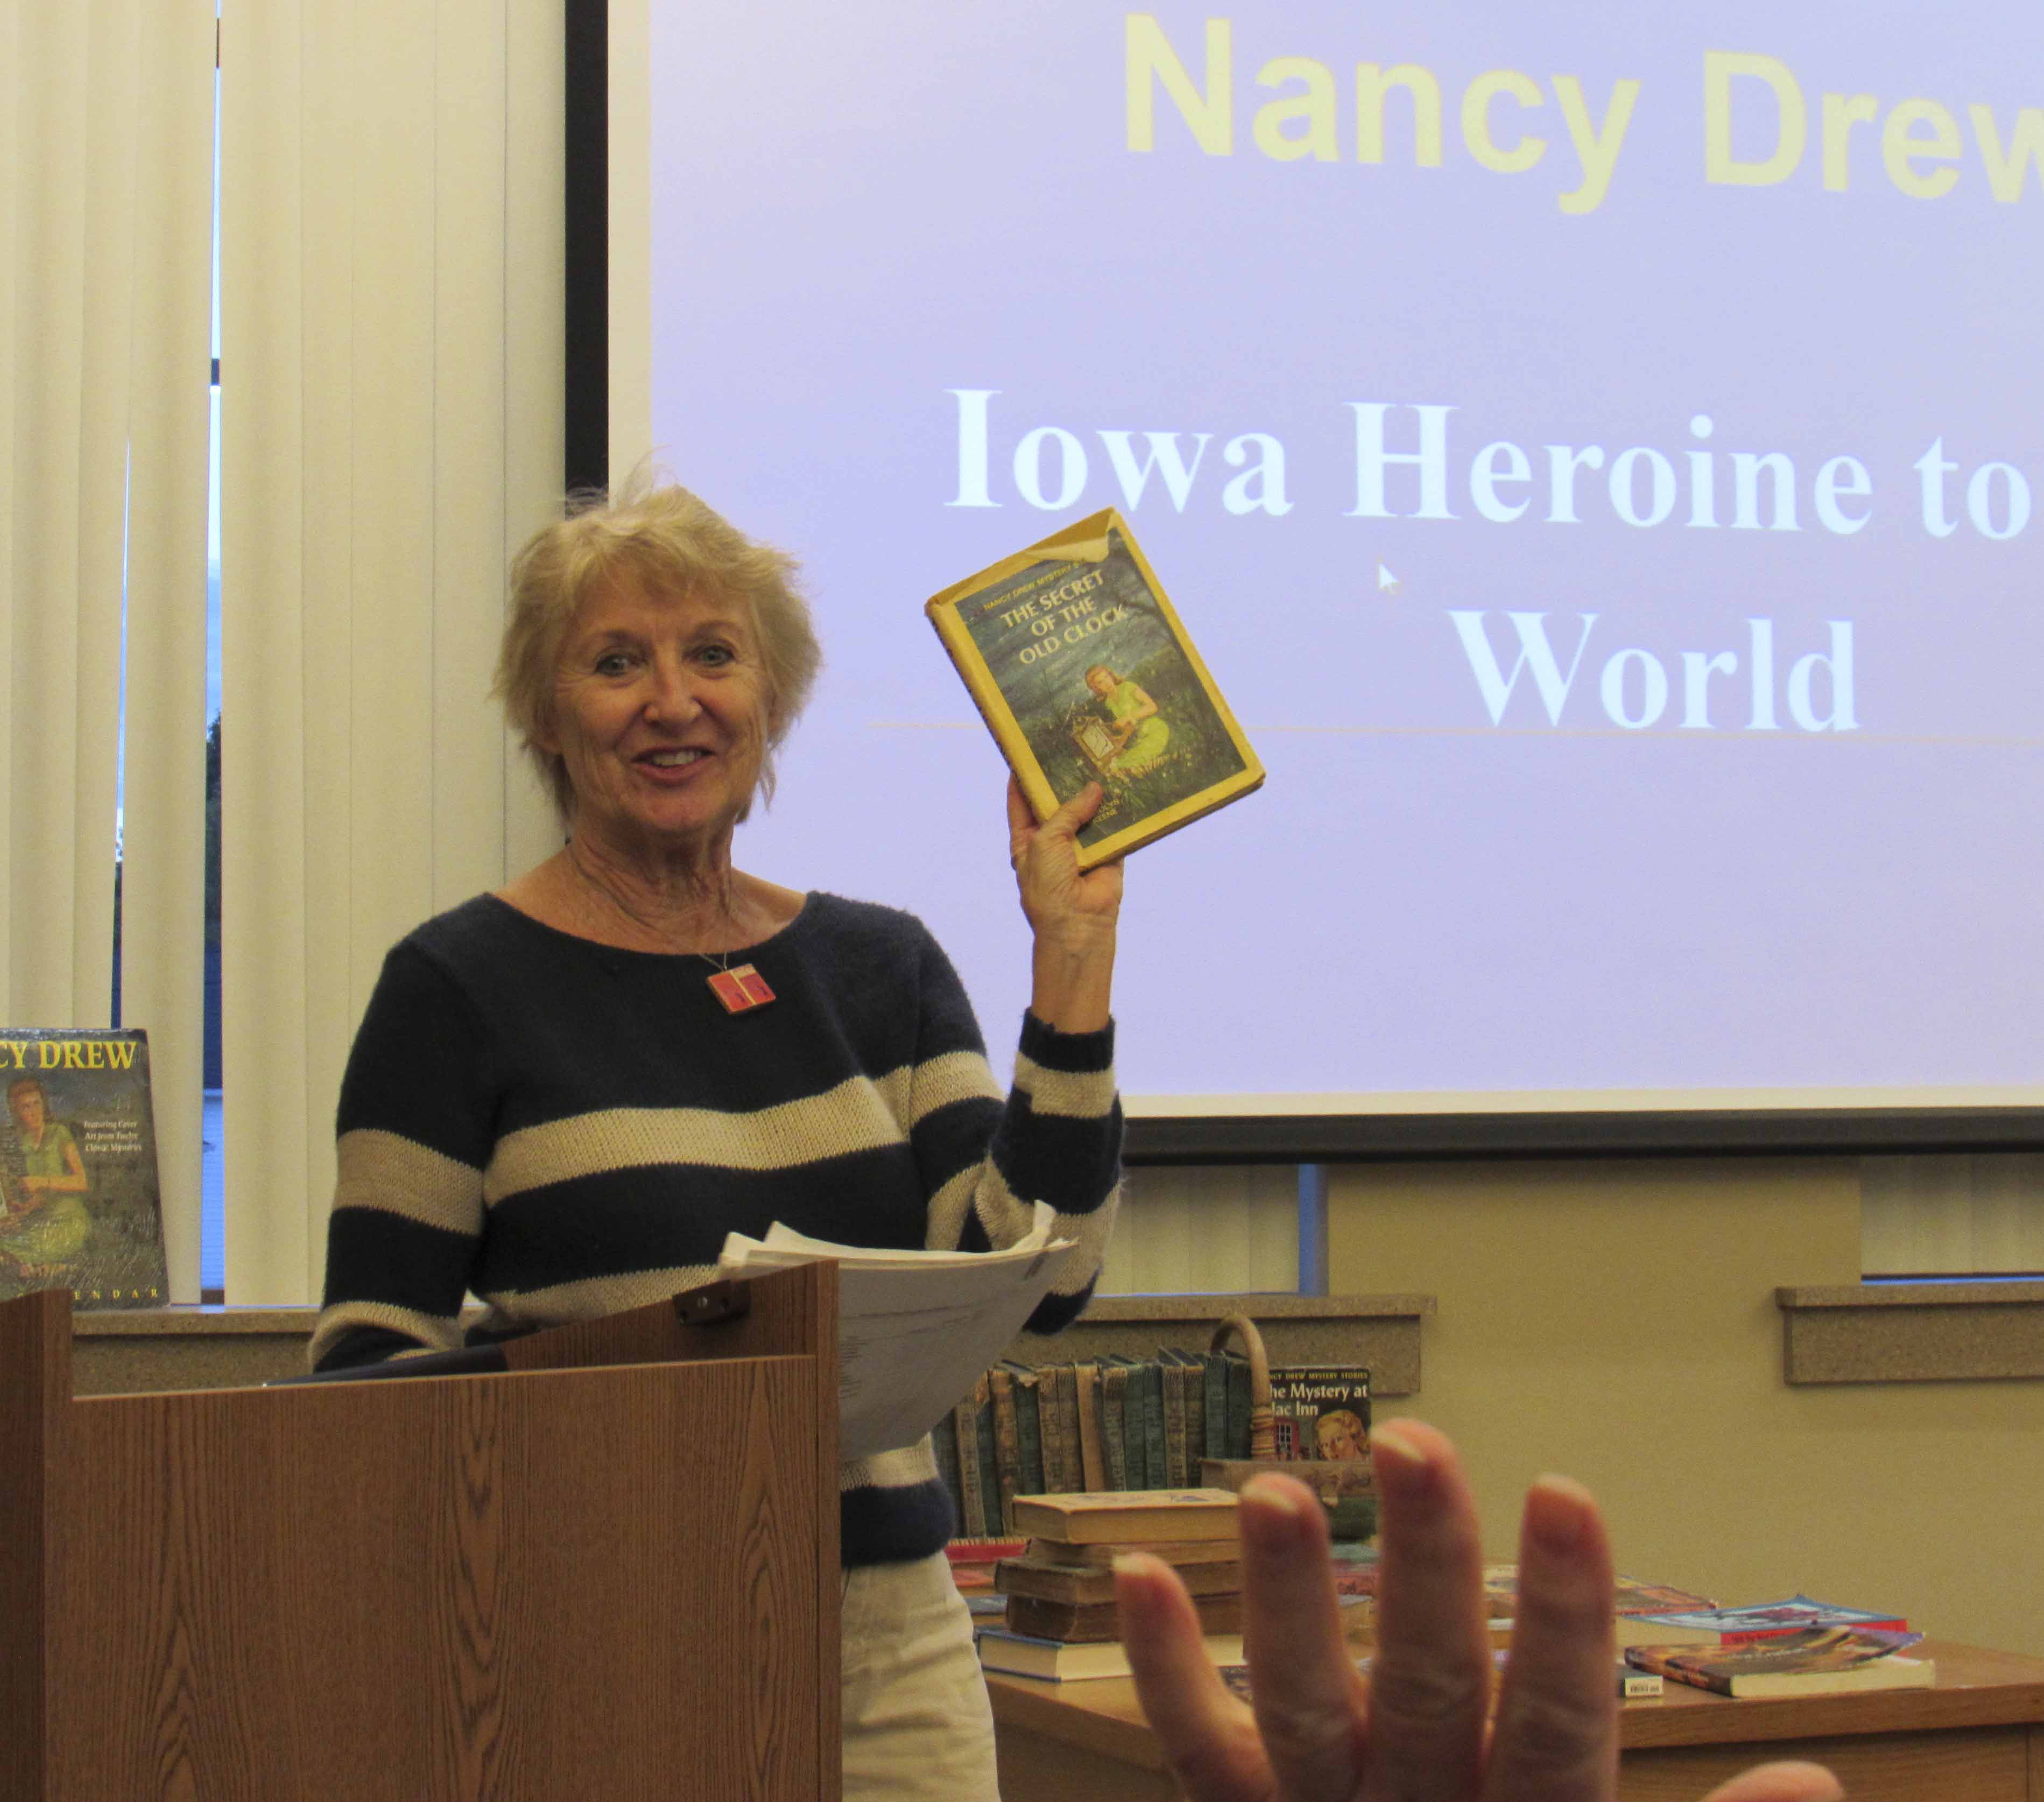 After collecting and researching Nancy Drew for more than 20 years, Lounsberry shared her rich wealth of knowledge with visitors at the Monticello library. She said Nancy Drew was the author's response to the Great Depression in the 1930s, assimilating Drew to that of Robin Hood who helped the less fortunate. Lounsberry said Nancy Drew had many of the qualities people look for in Midwesterns: charm, smarts, and outdoorsy. (Photos by Kim Brooks)